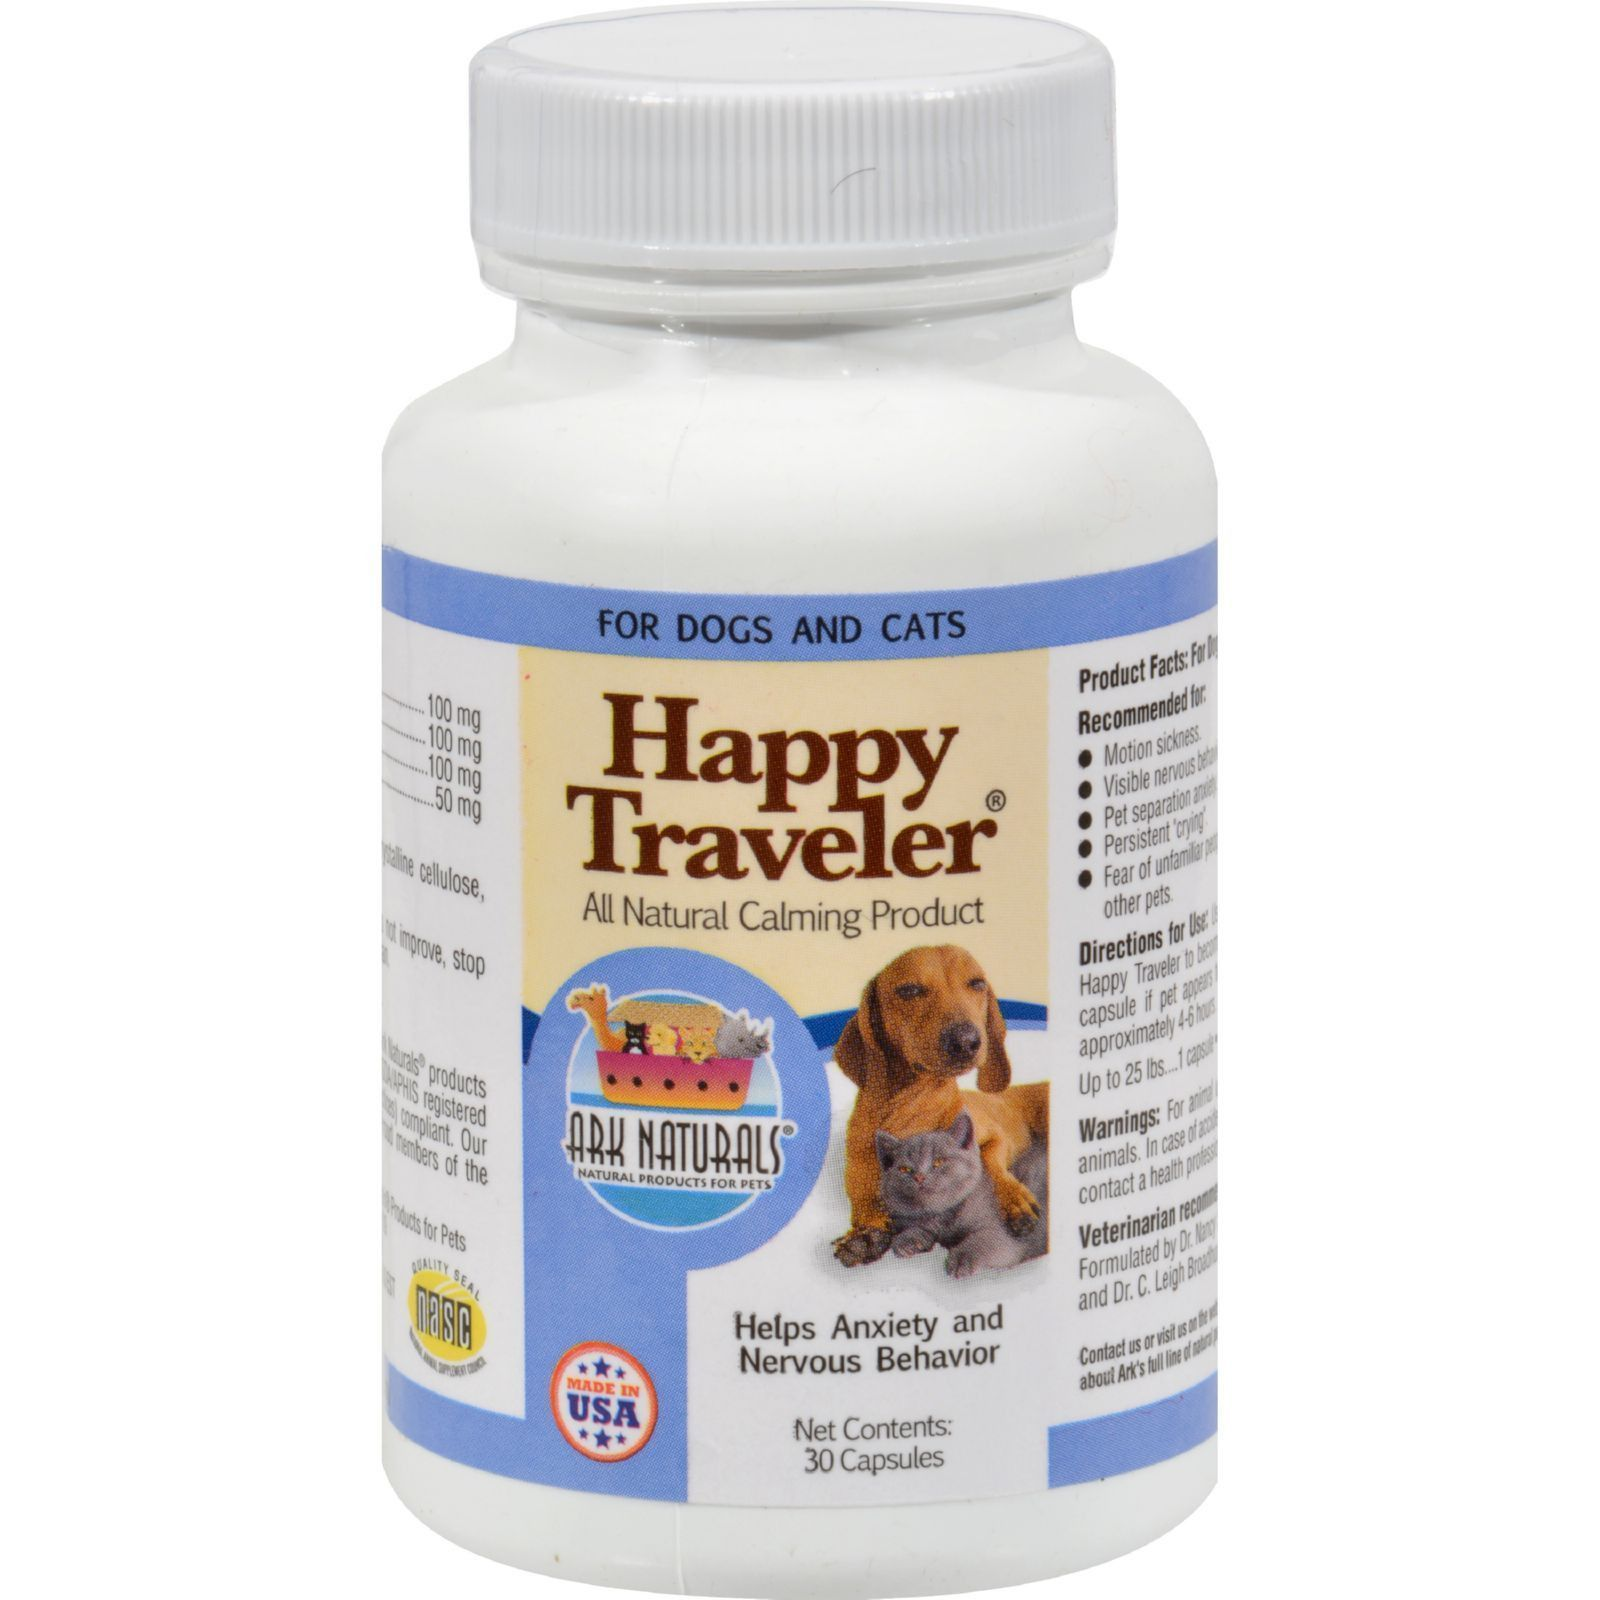 Ark naturals happy traveler for dogs and cats 30